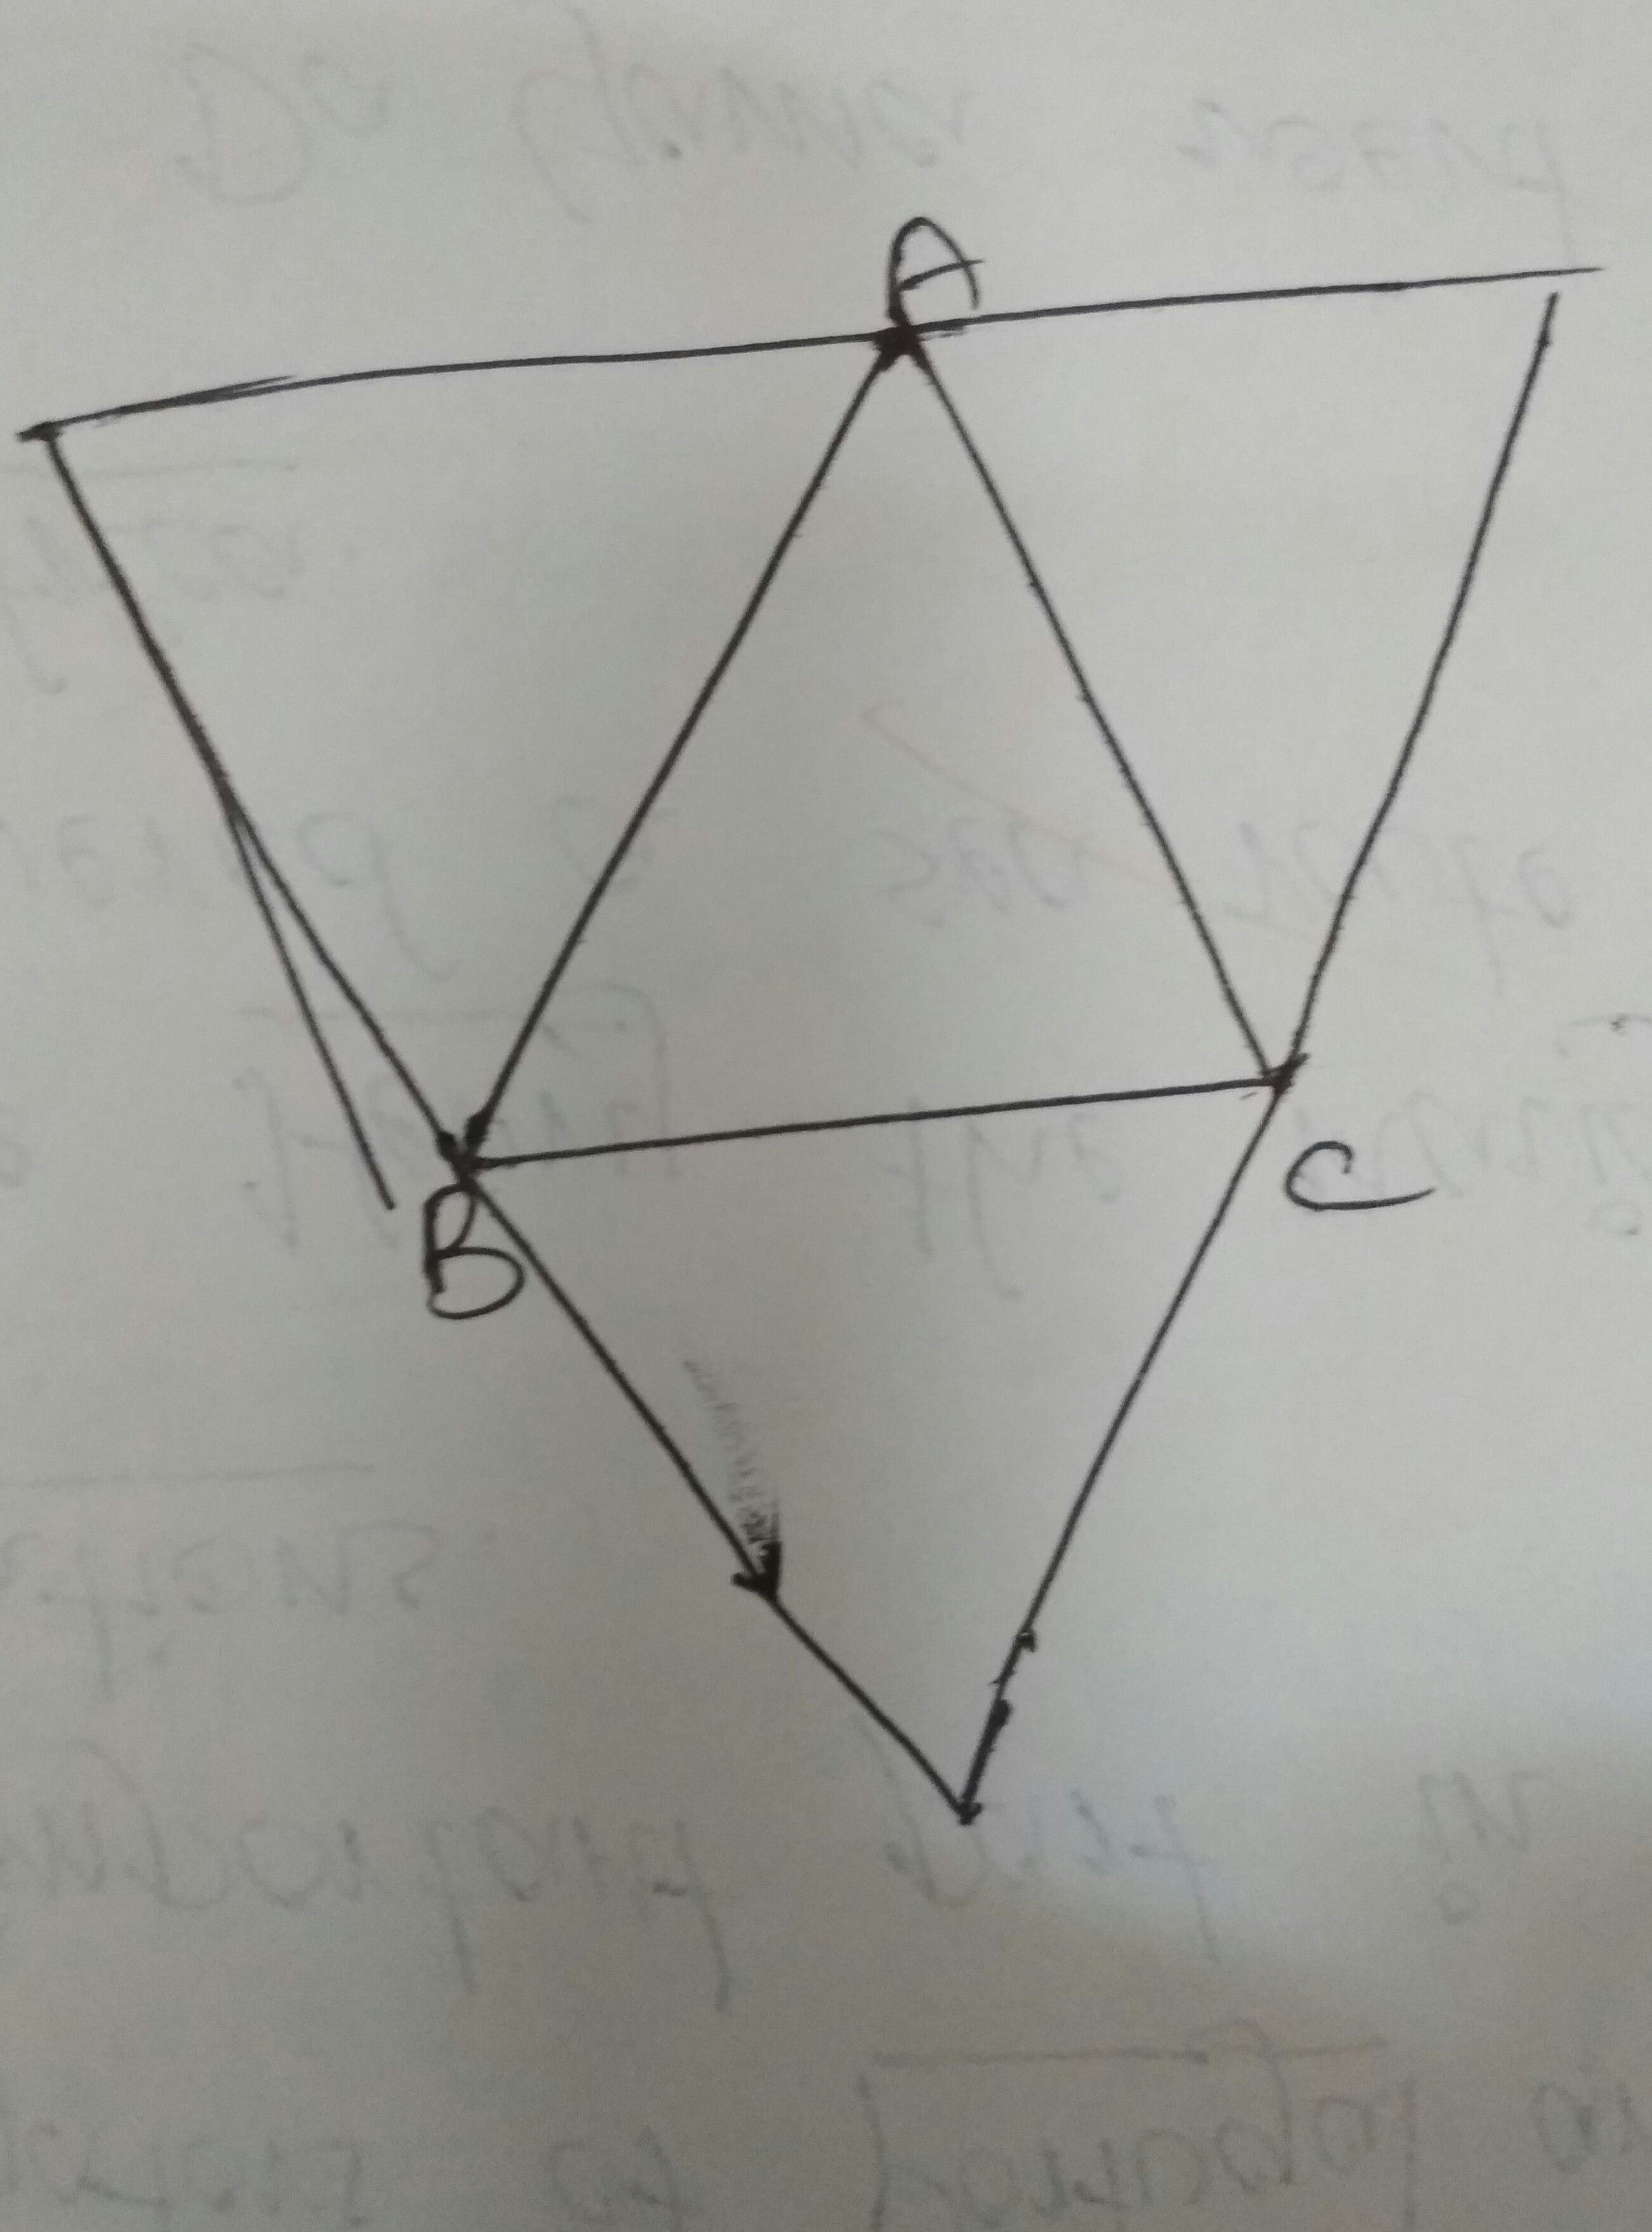 Draw A Triangle Abc Through Each Vertex Of The Triangle Draw A Line